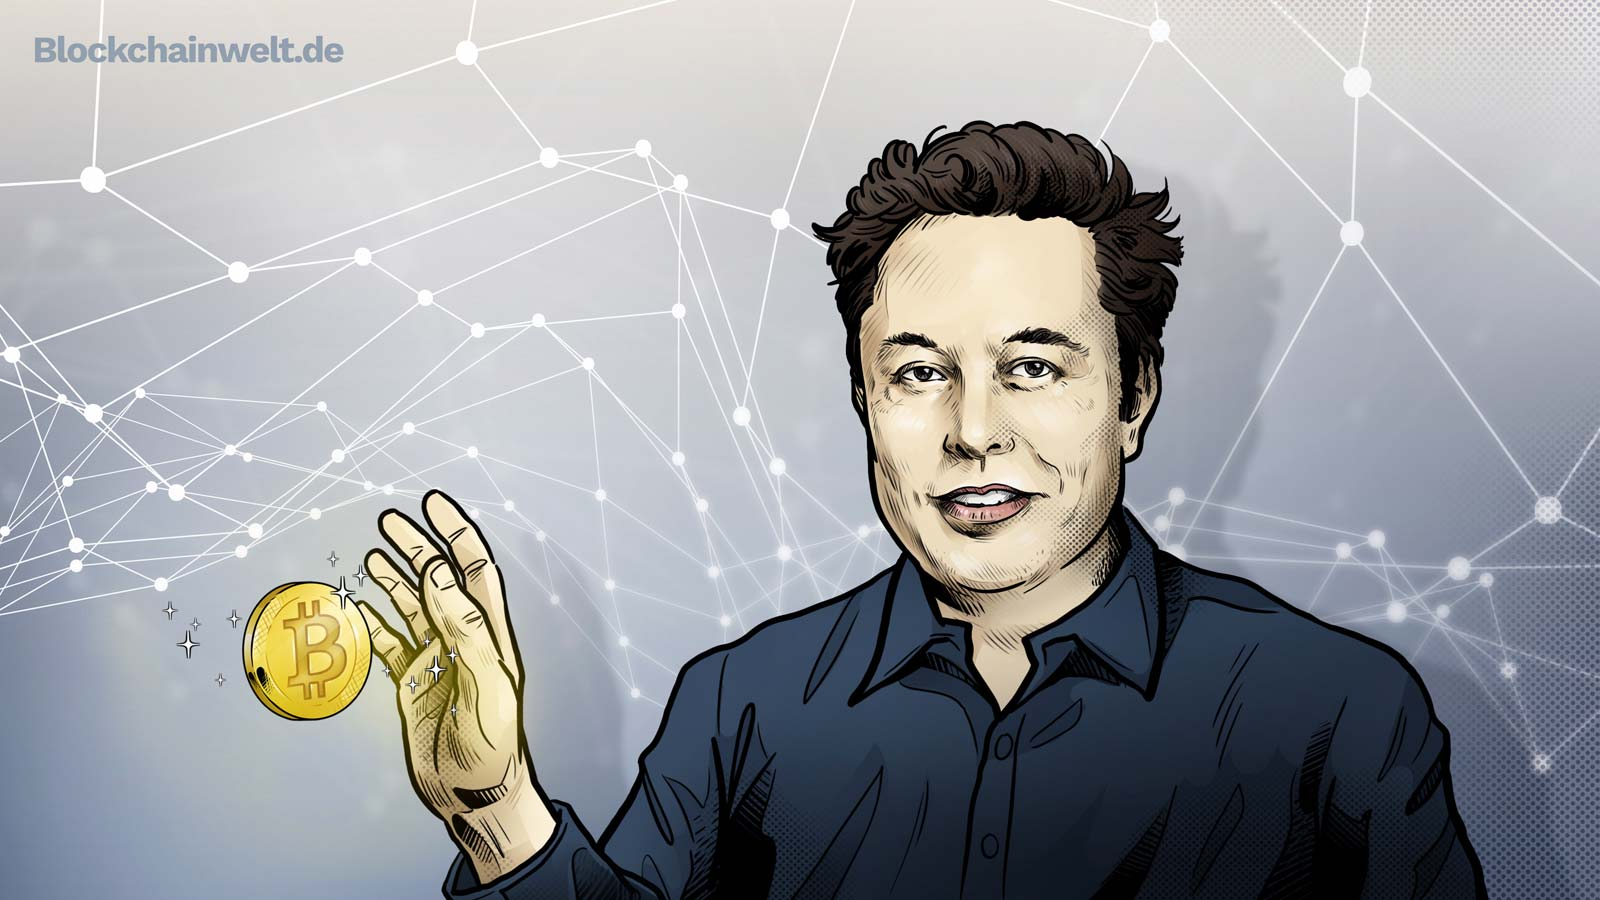 Elon Musk Bitcoin Illustration